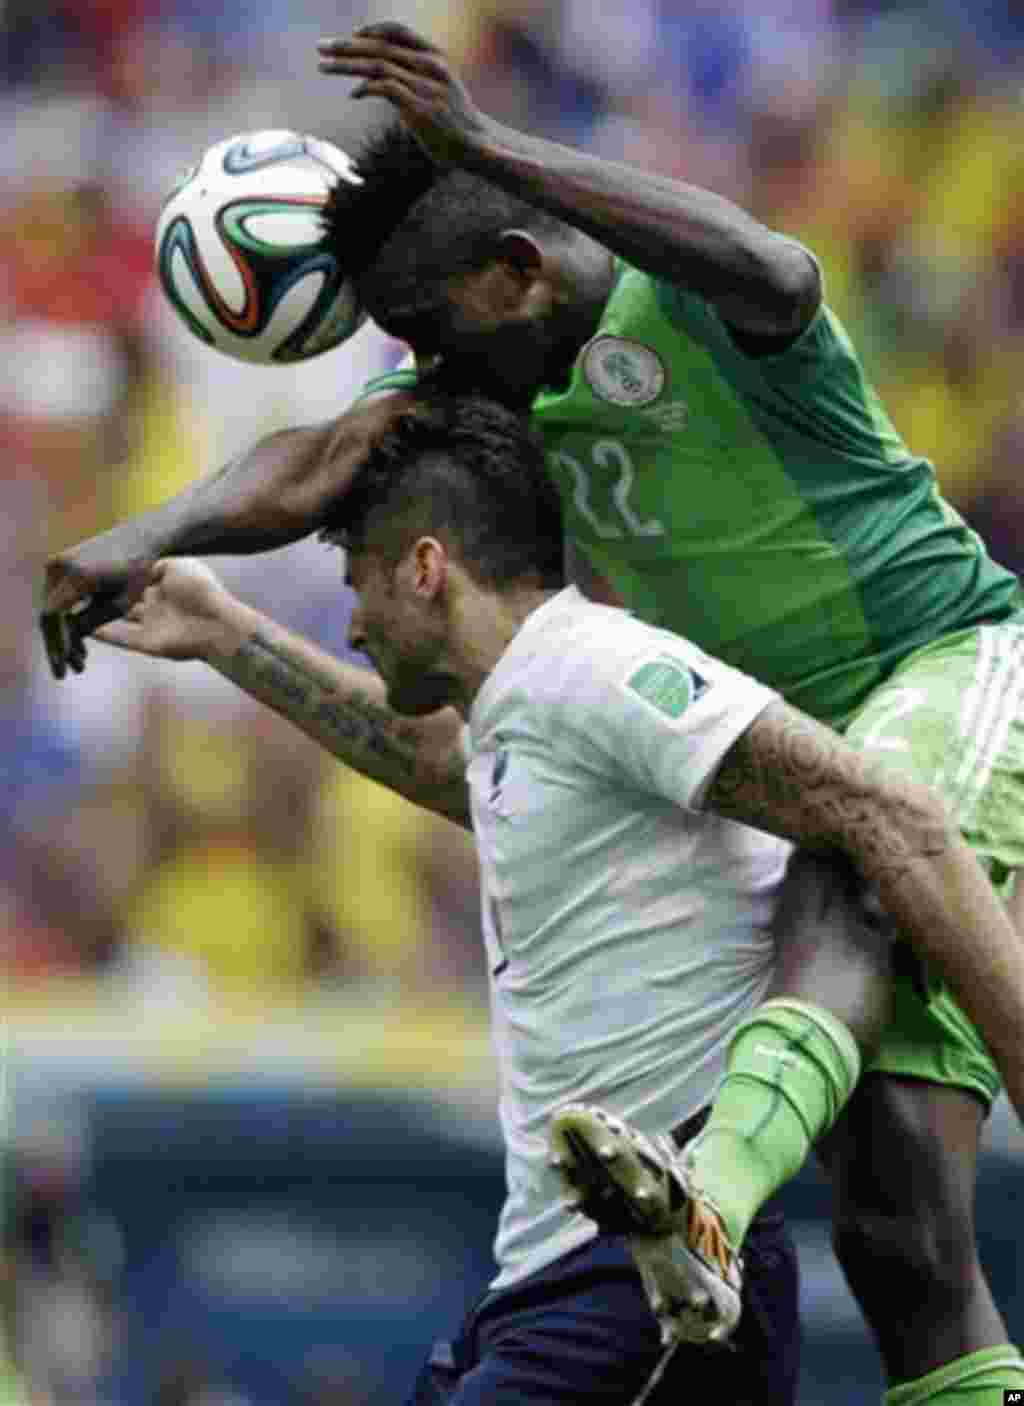 Nigeria's Kenneth Omeruo goes for a header with France's Olivier Giroud during the World Cup round of 16 soccer match between France and Nigeria at the Estadio Nacional in Brasilia, Brazil, Monday, June 30, 2014. (AP Photo/Ricardo Mazalan)